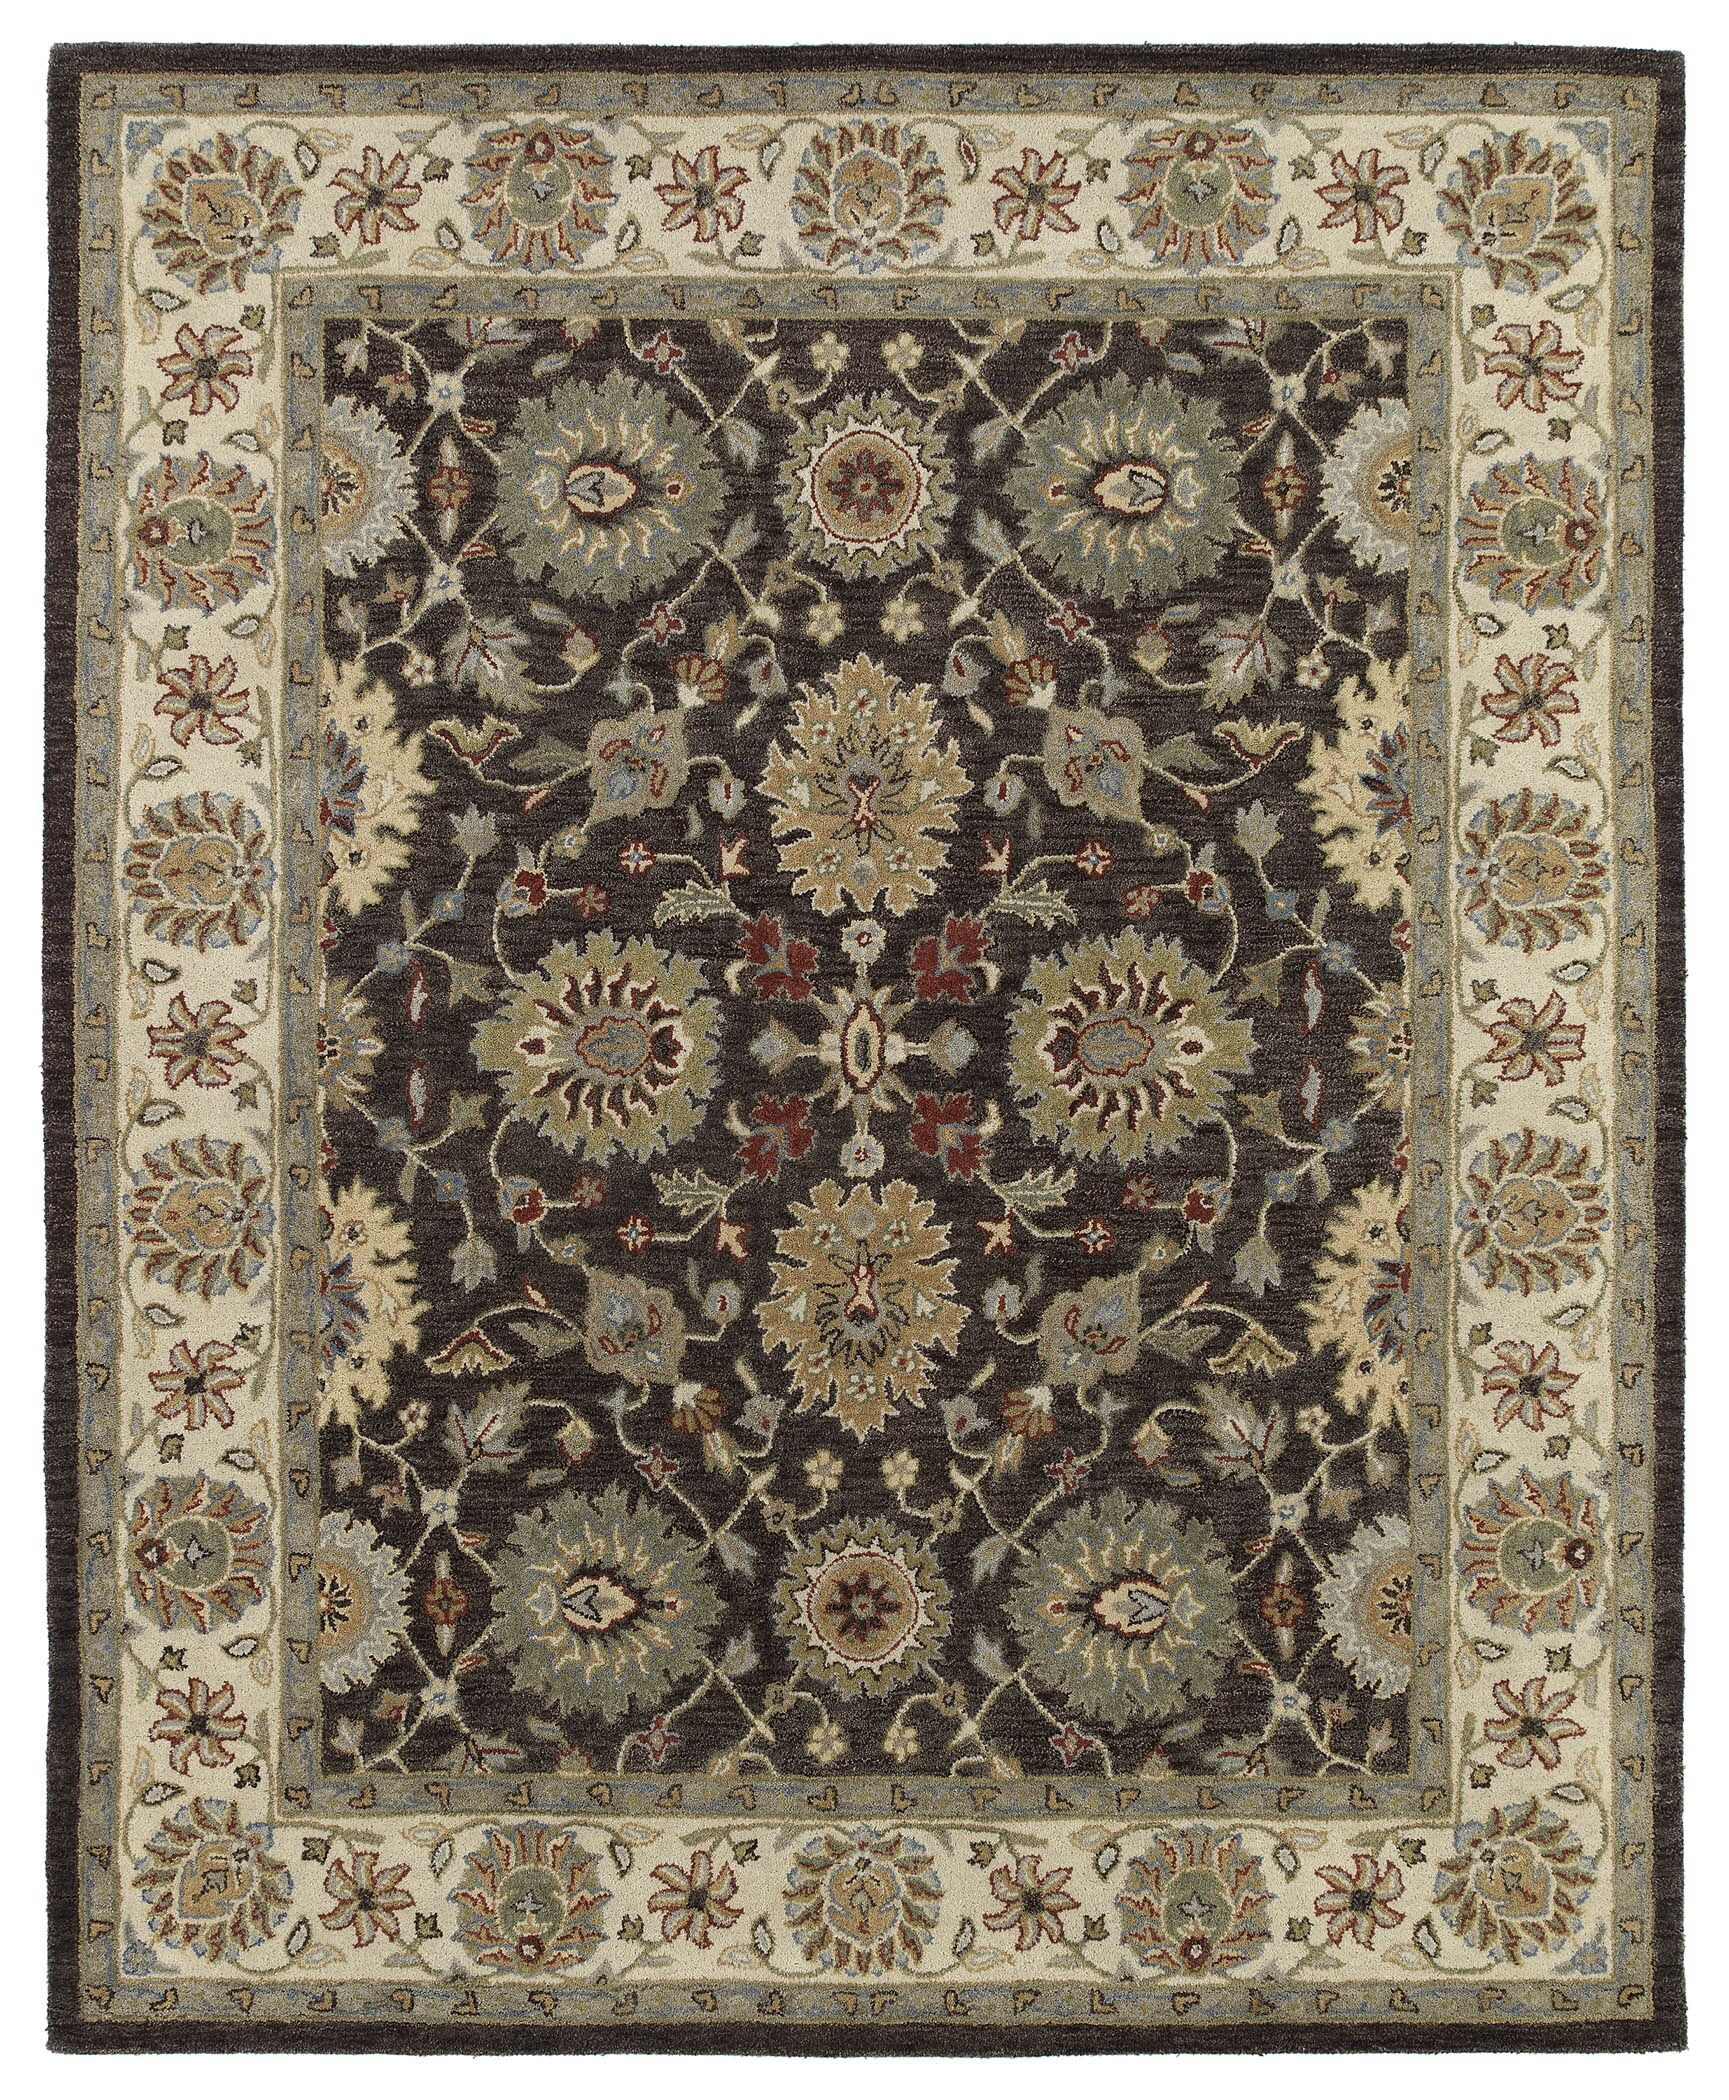 Chisolm Brown/Tan Area Rug Rug Size: Rectangle 10' x 14'